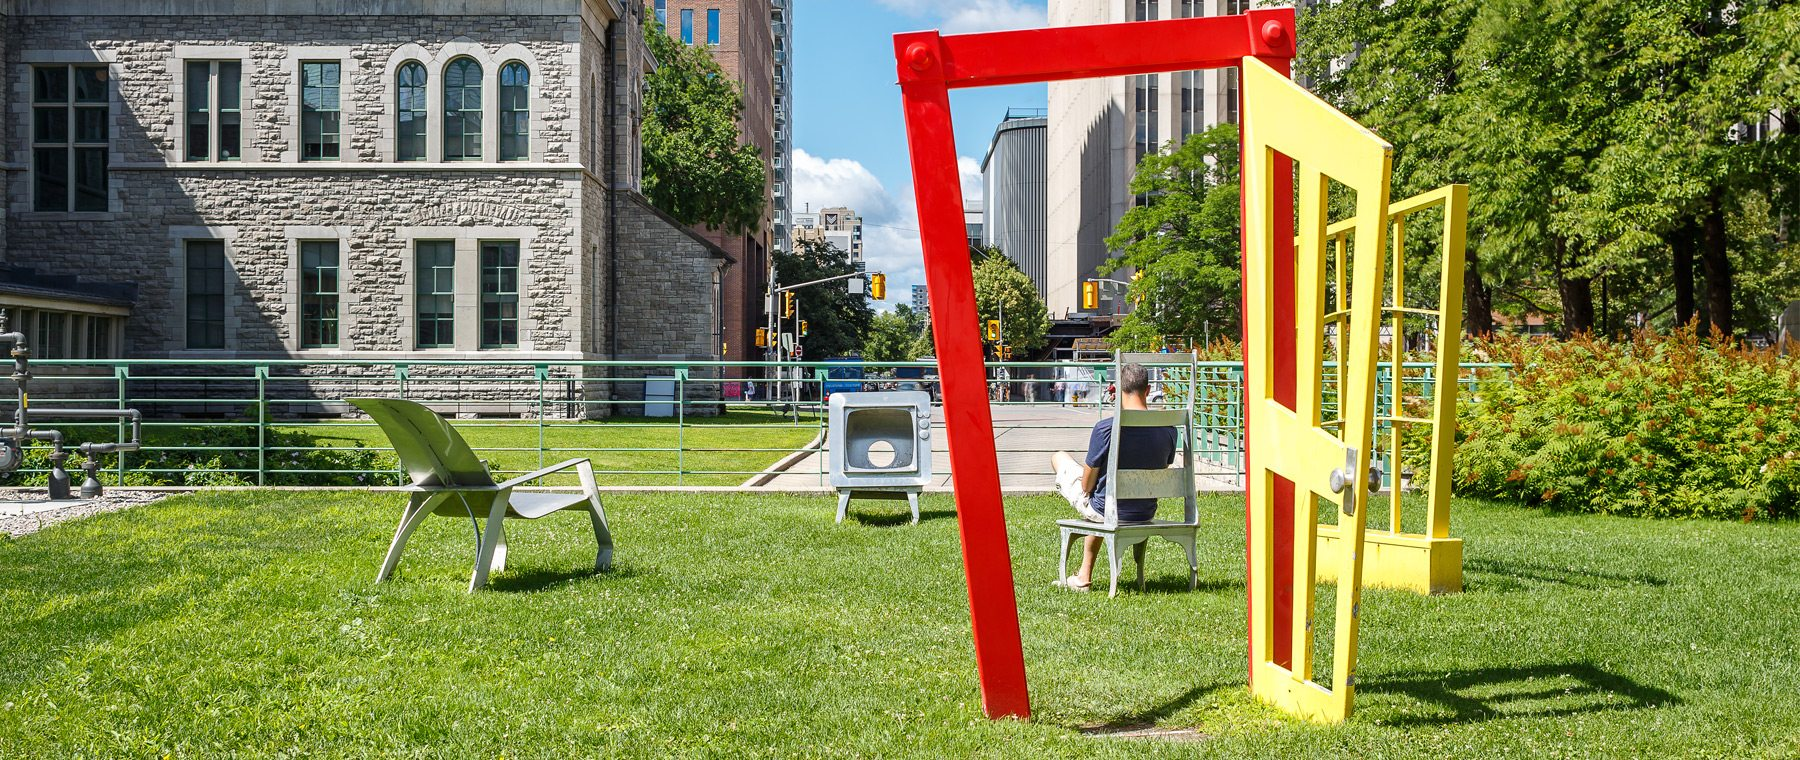 Installation by Urban Keios, which sits outside City Hall. Photo: Doublespace Photography